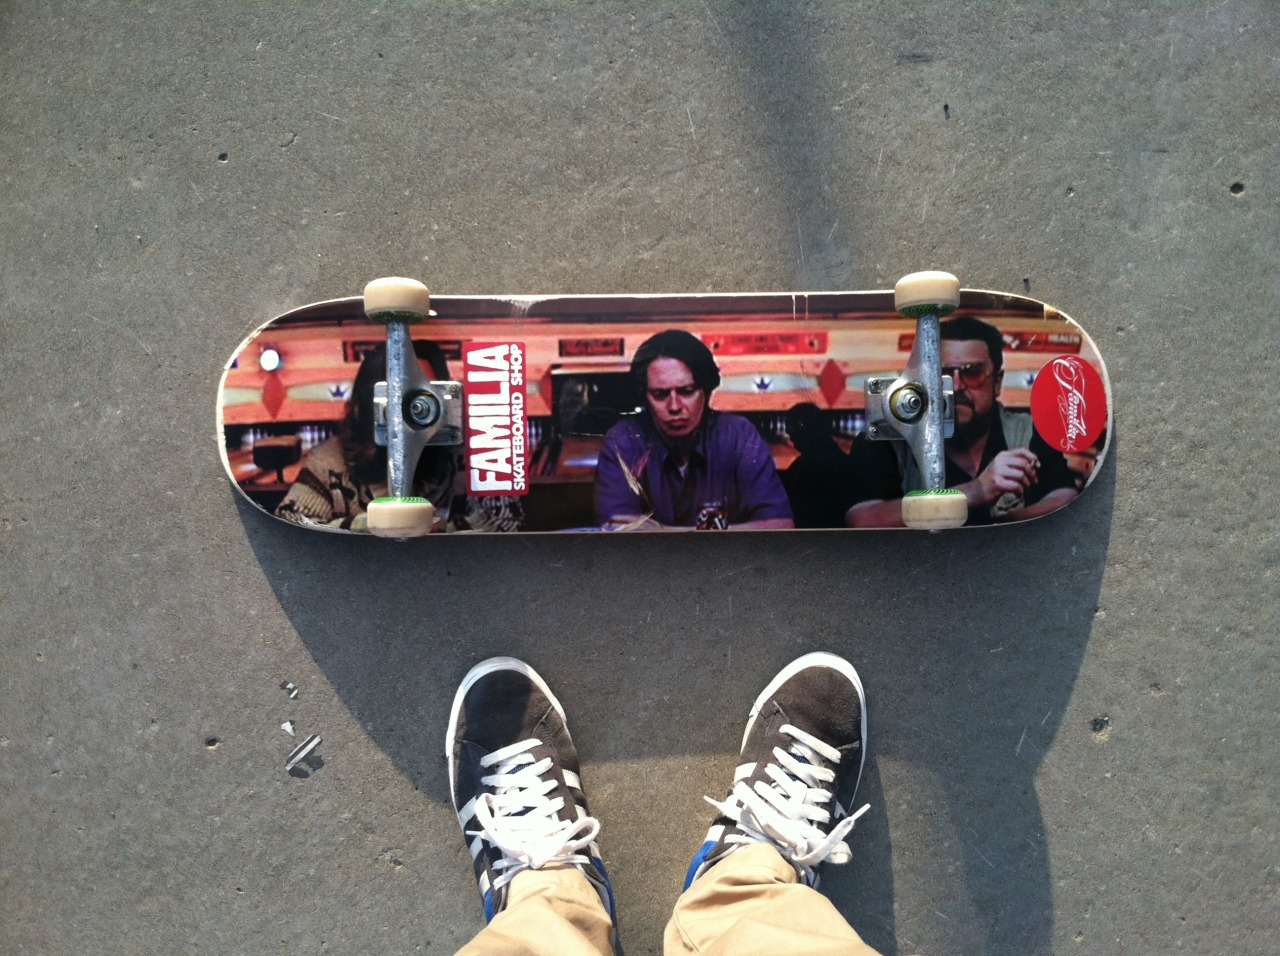 favorite board ever